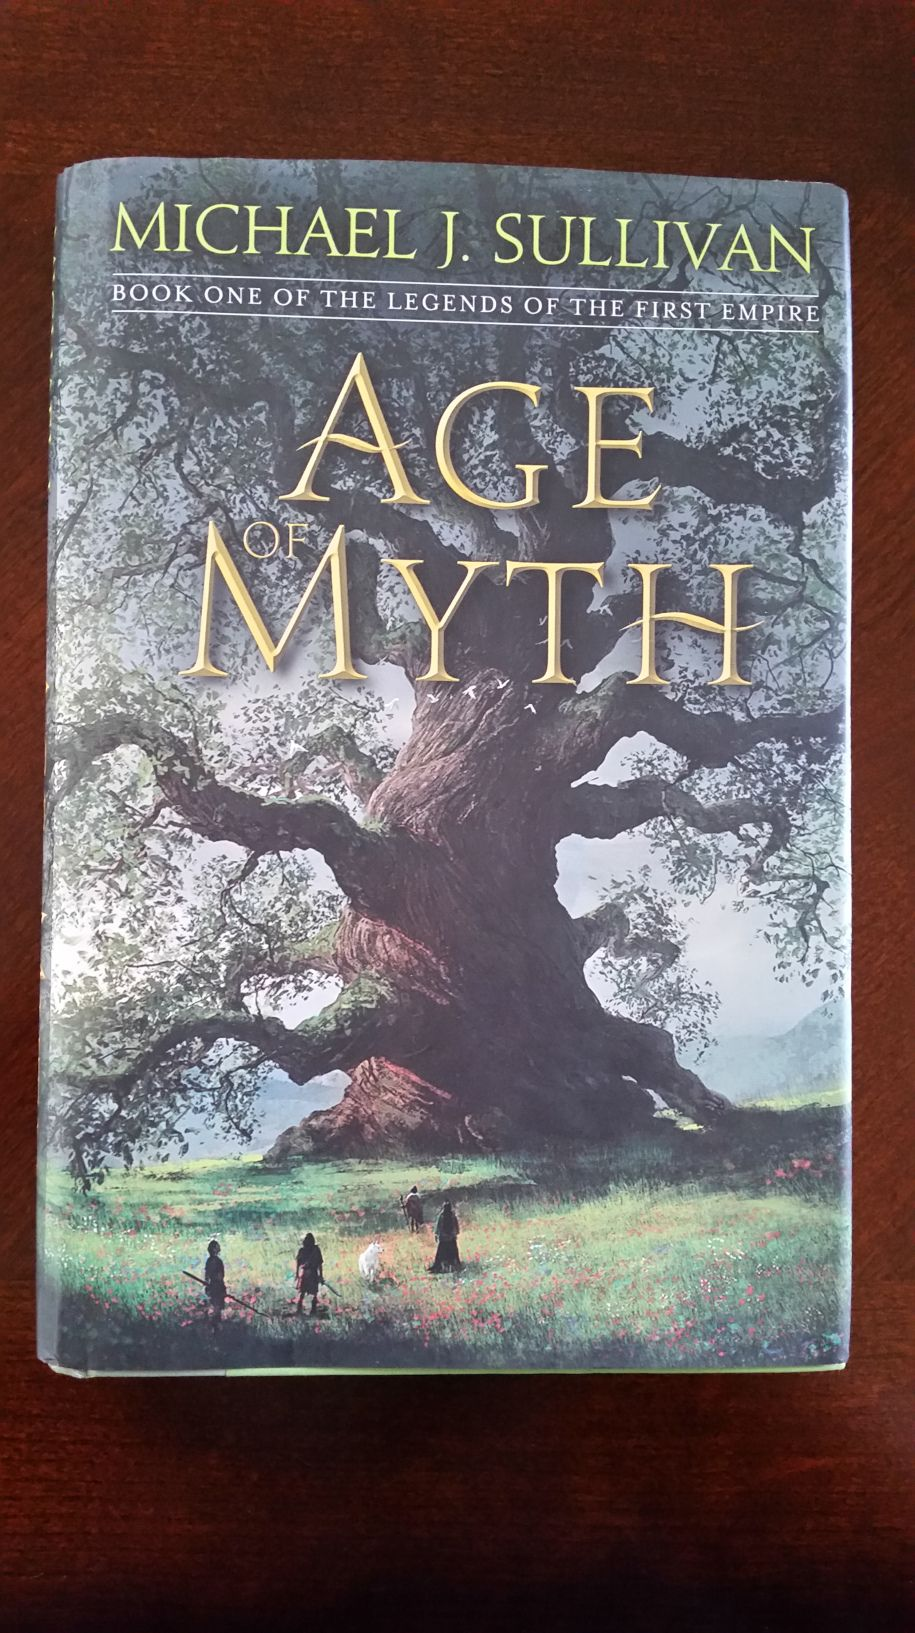 I got this in the mail this week! A beautiful signed and stamped copy of Age of Myth by Michael J. Sullivan . I am very excited for this book. I can't wait to dive into this new book and seri…